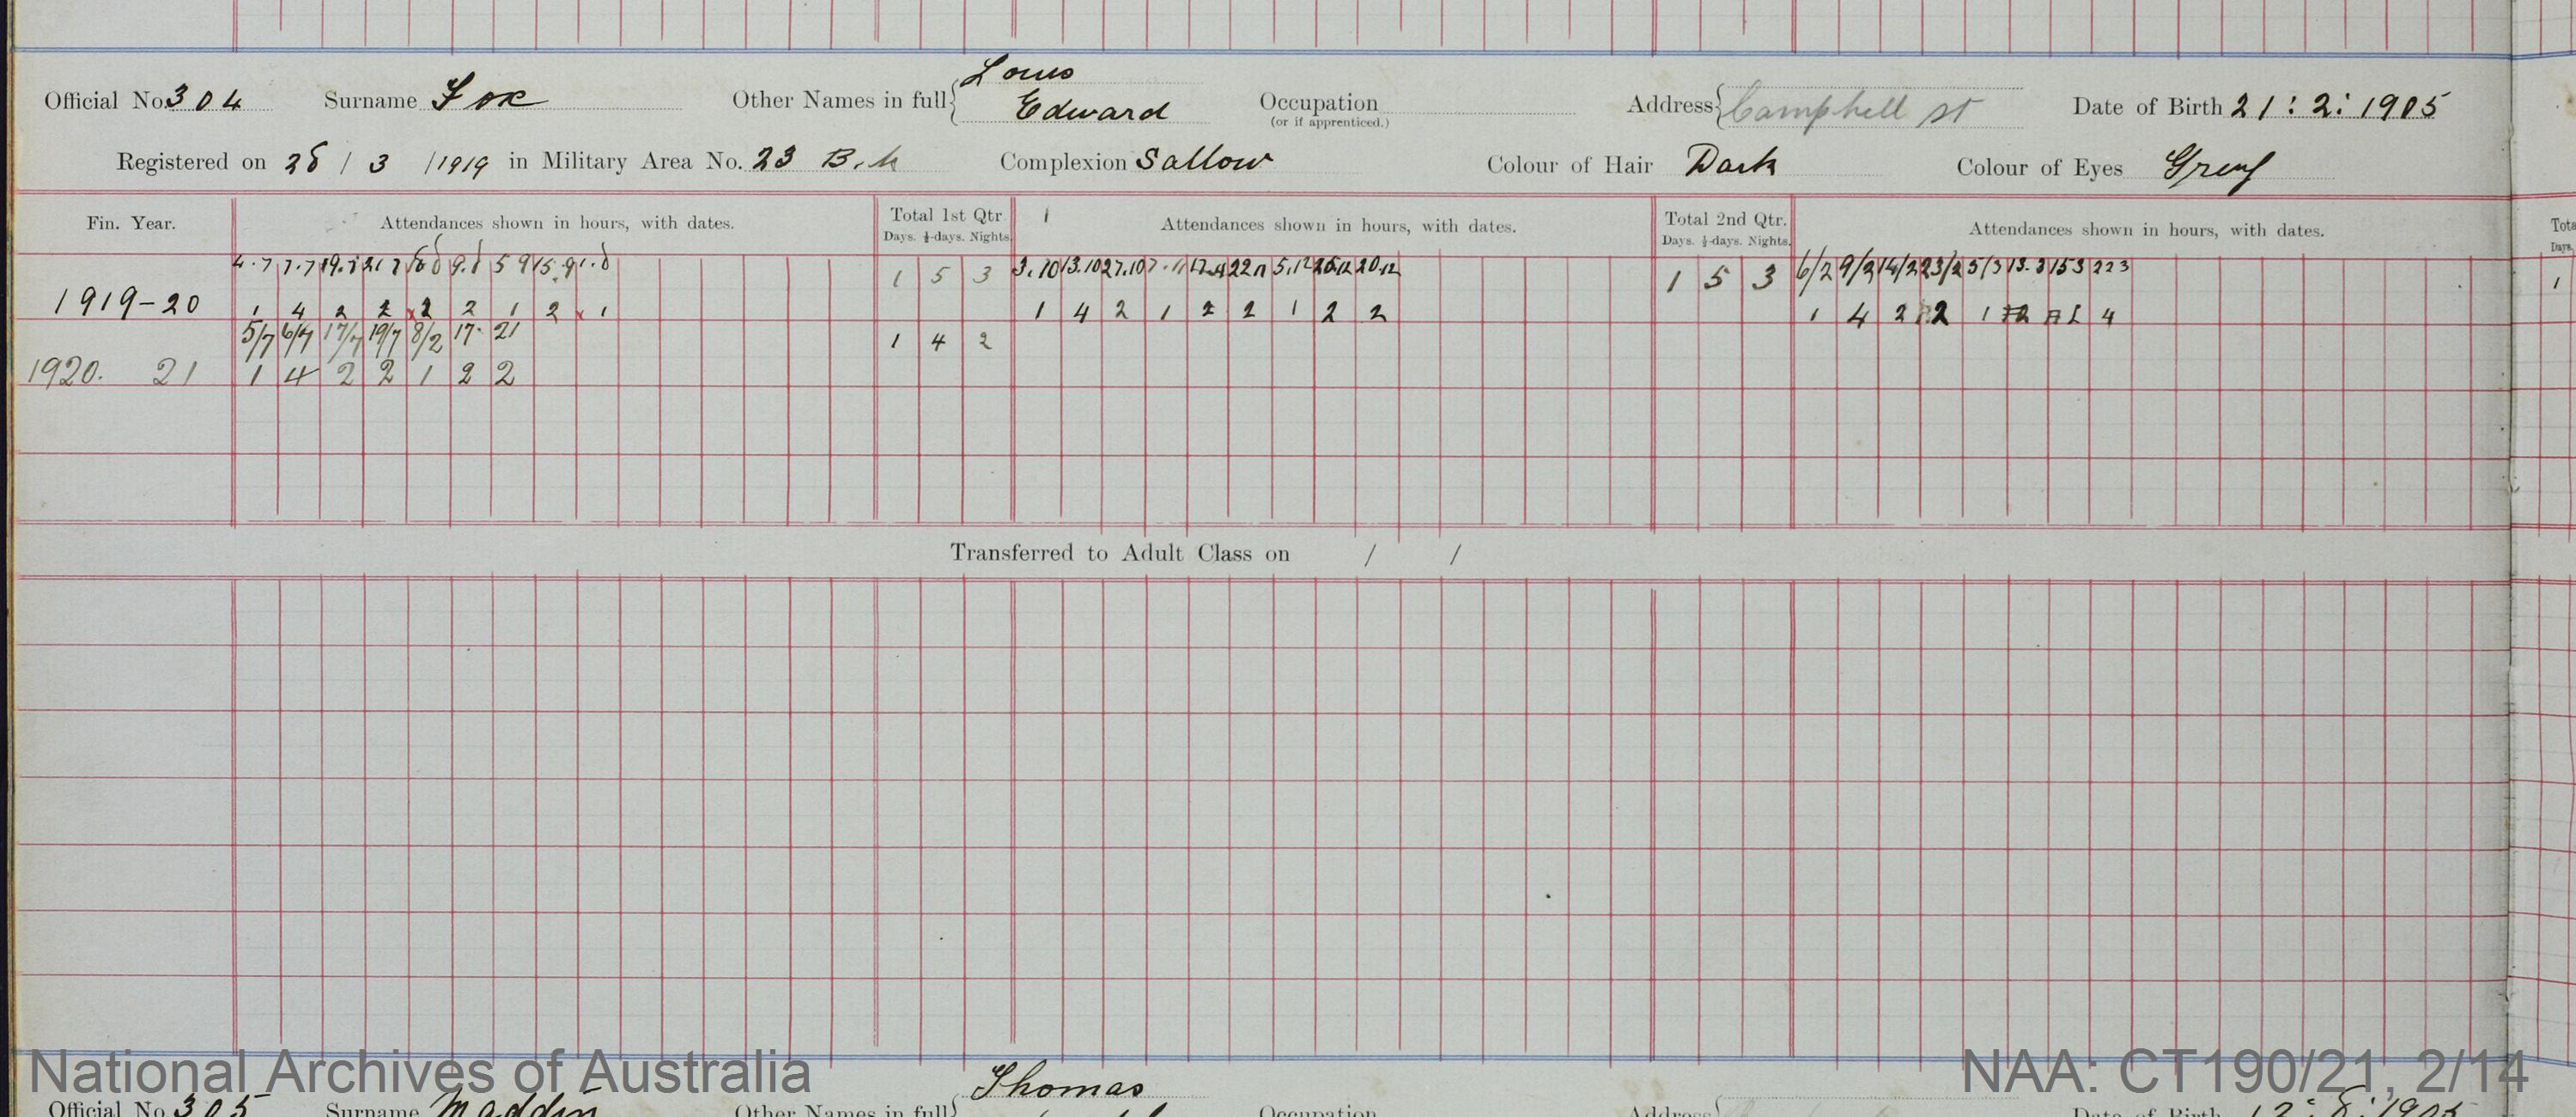 SURNAME - FOX;  GIVEN NAME(S) - Louis Edward;  OFFICIAL NUMBER - 304;  DATE OF BIRTH - 21 February 1905;  PLACE OF BIRTH - [Unknown];  NEXT OF KIN - [Unknown] ;  SERVICE/STATION - Port Fairy;  REGISTRATION DATE - 25 March 1919